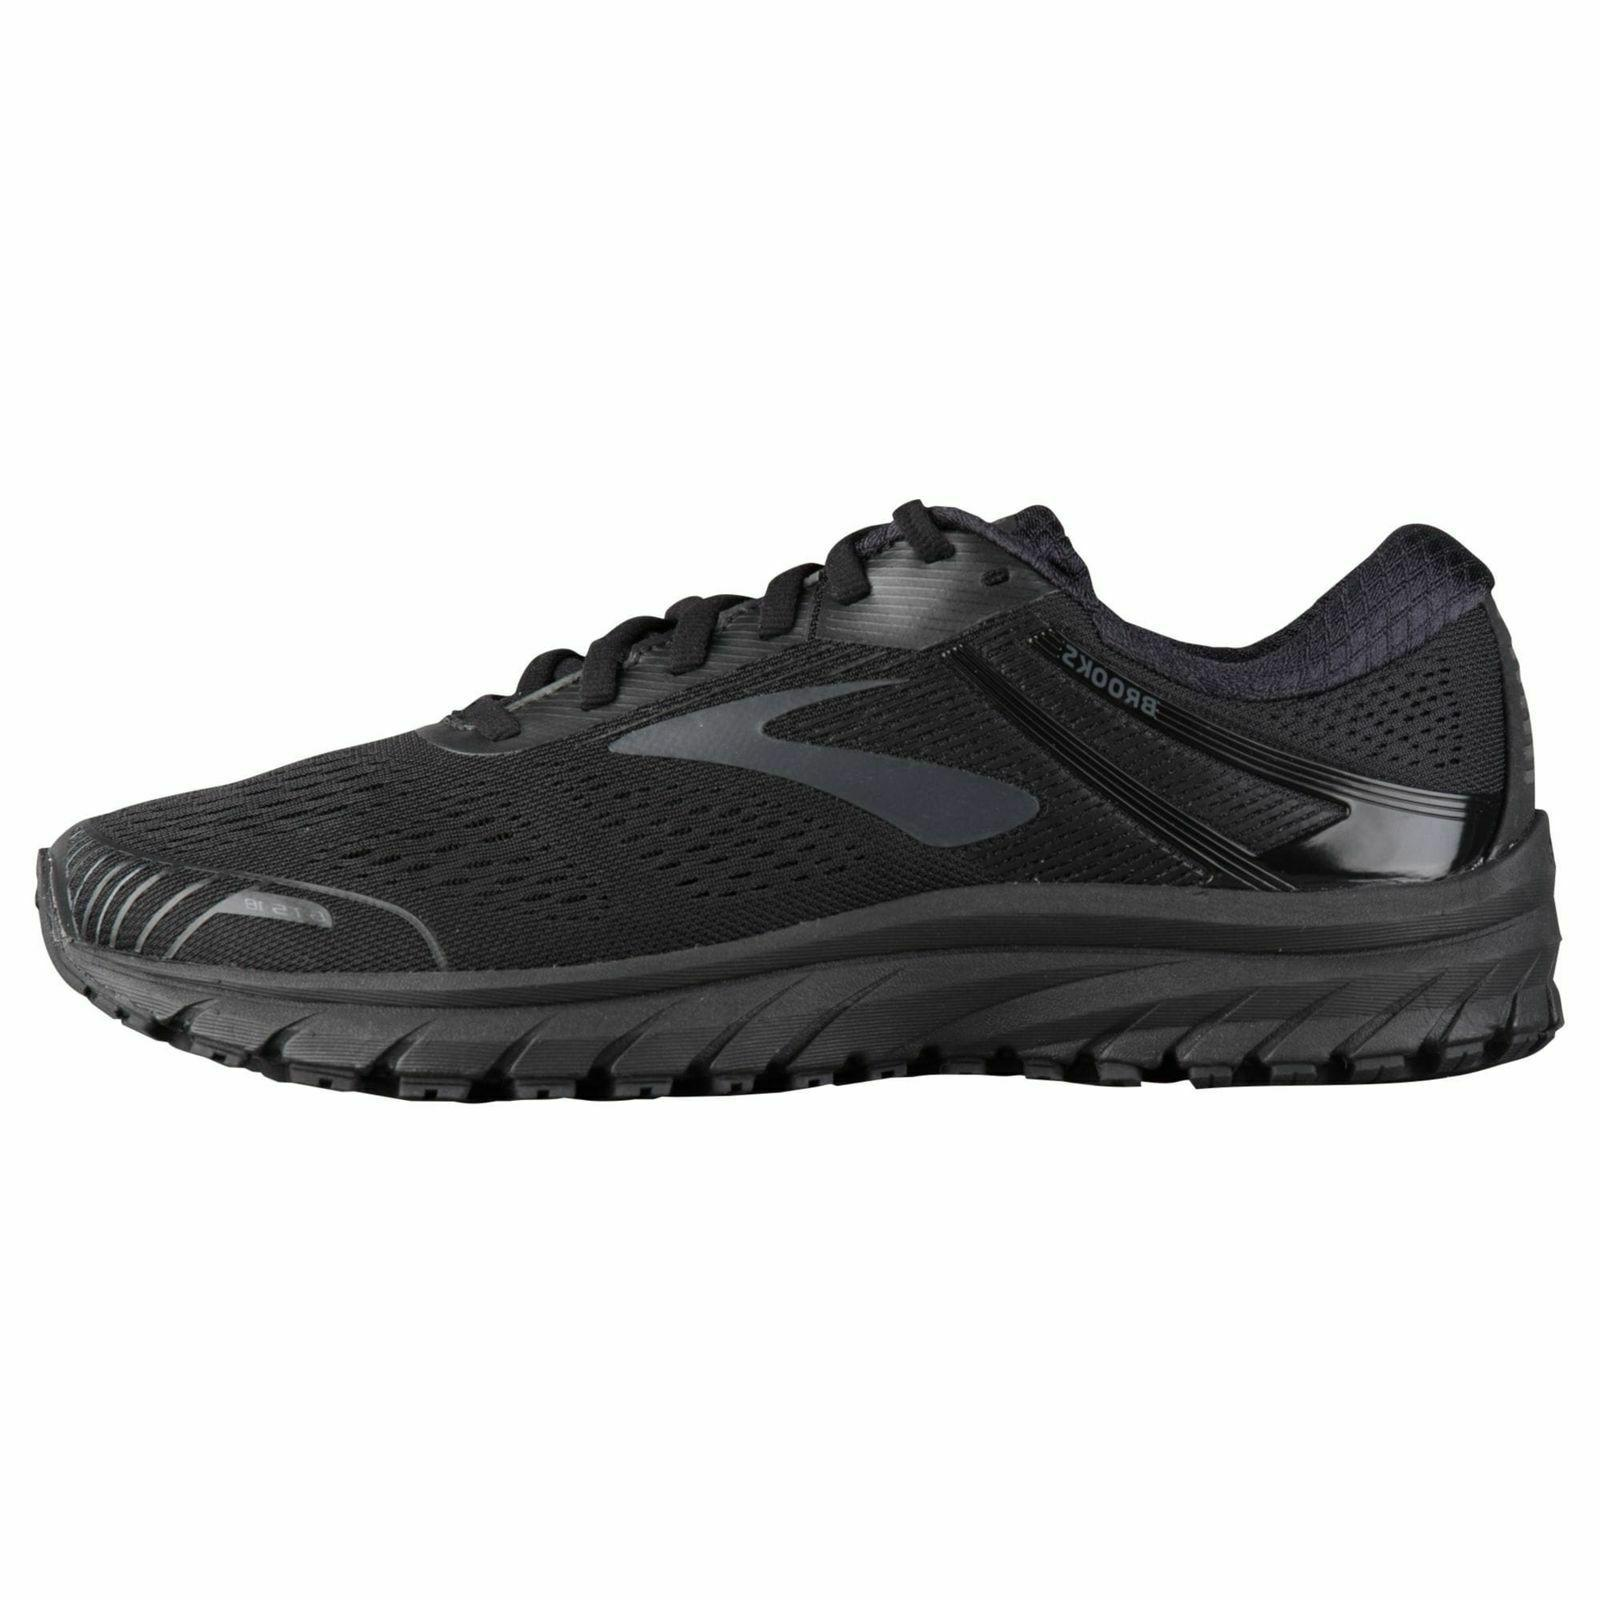 NIB BROOKS 110271 026 BLACK SHOE WIDE 4E